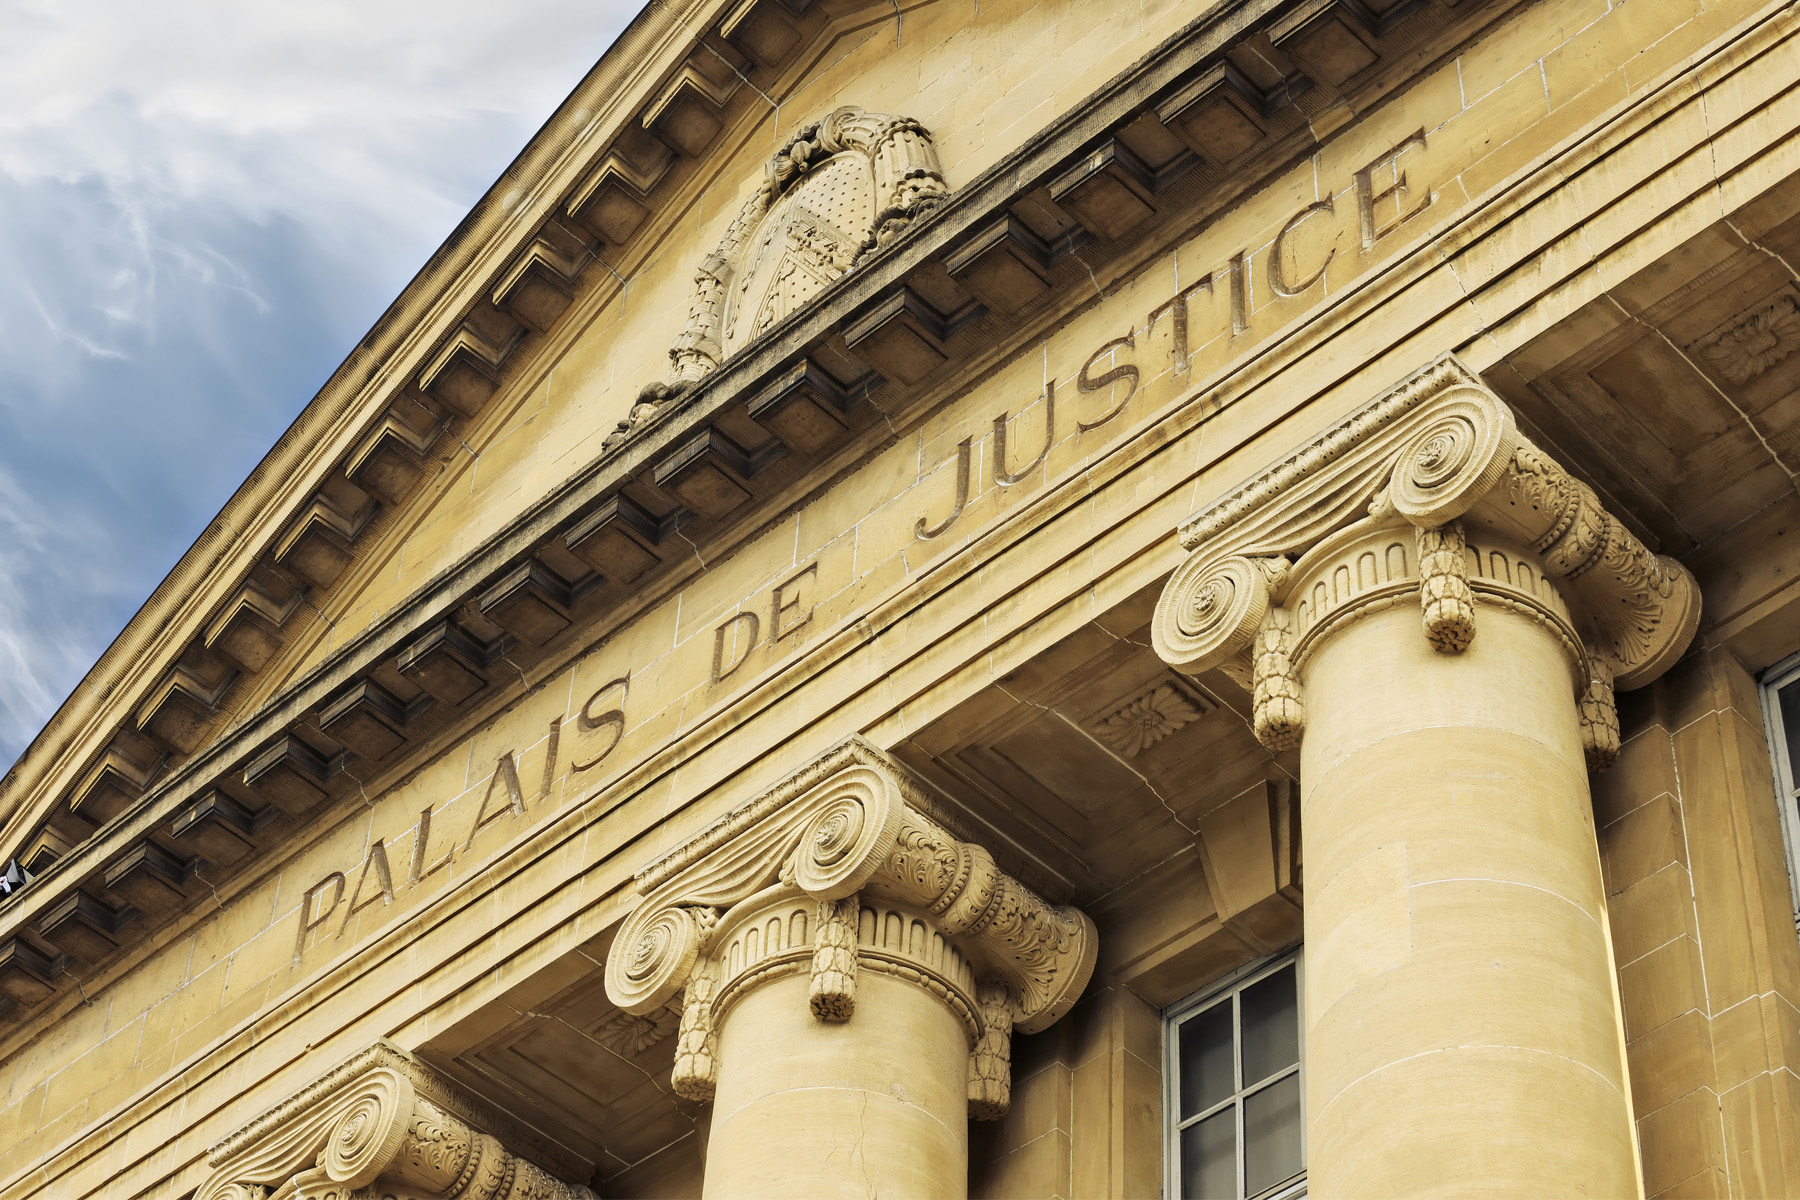 Court of law in Sarreguemines, France